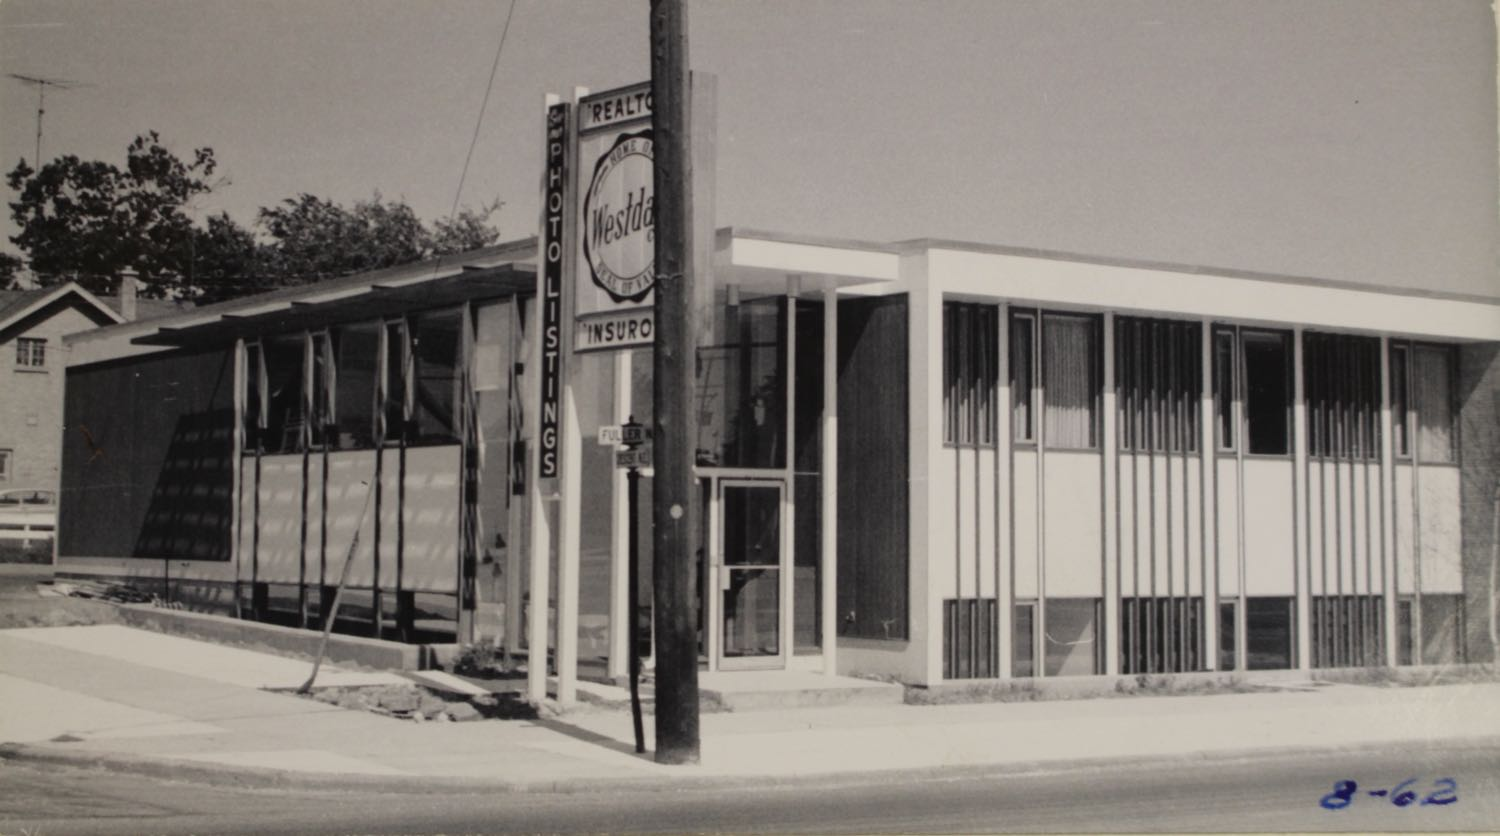 345 Fuller NE as Westdale Company   1962 Photo Courtesy of the City of Grand Rapids Community Archives and Research Center